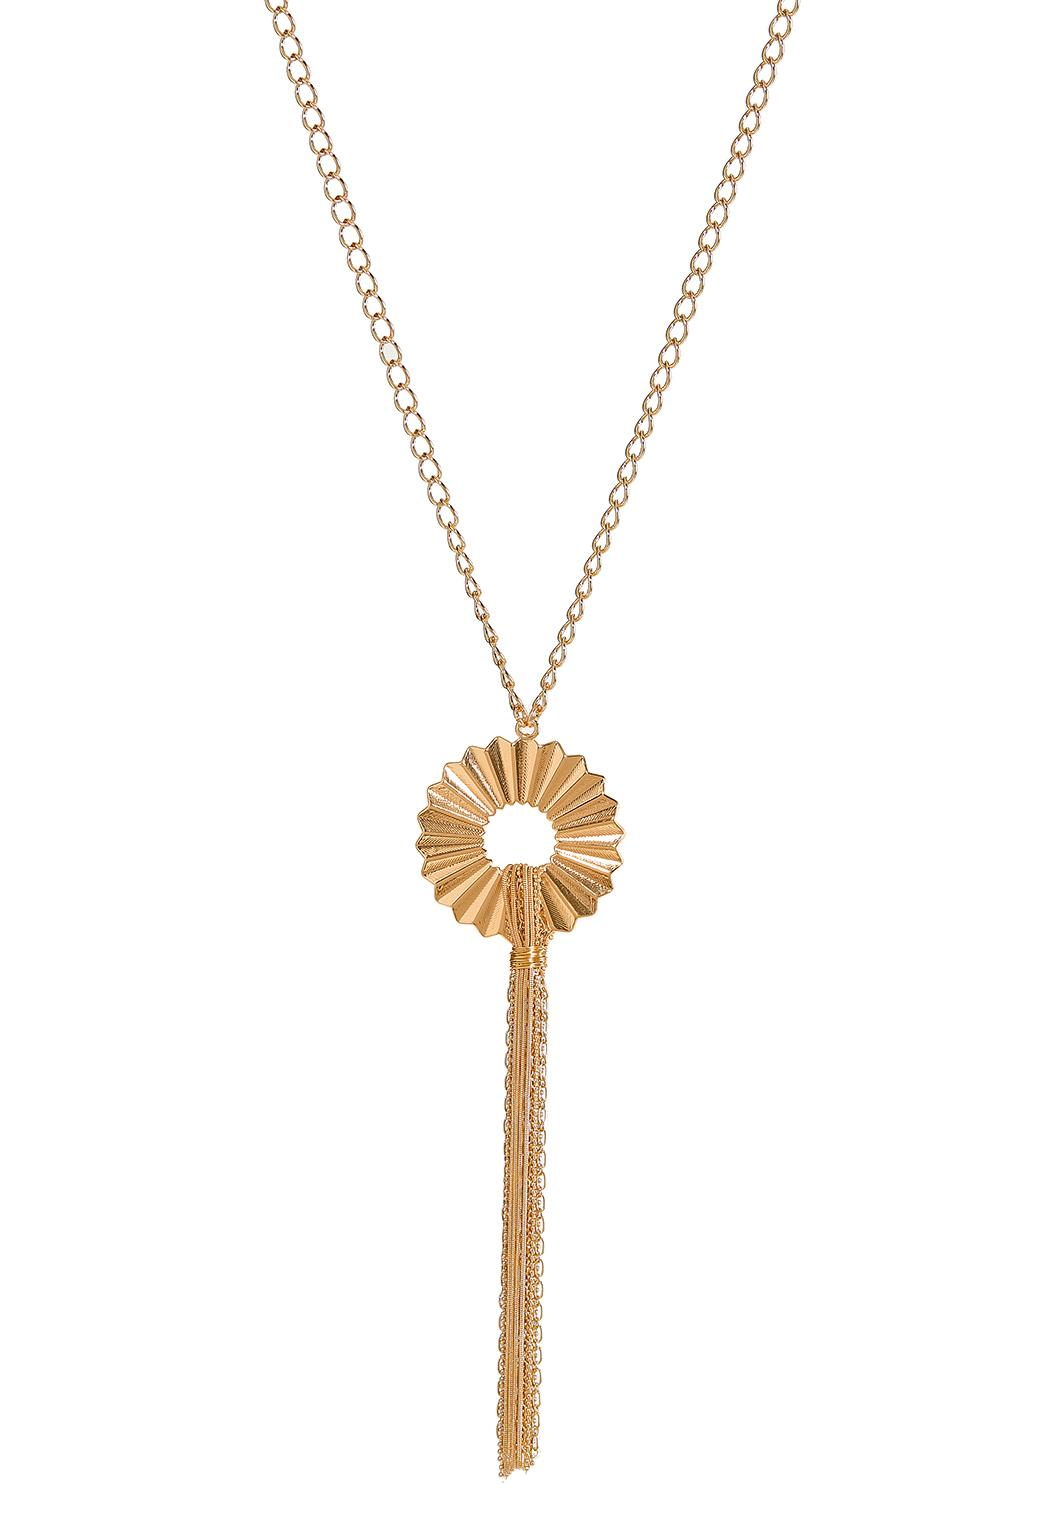 Crinkled Pendant Chain Necklace